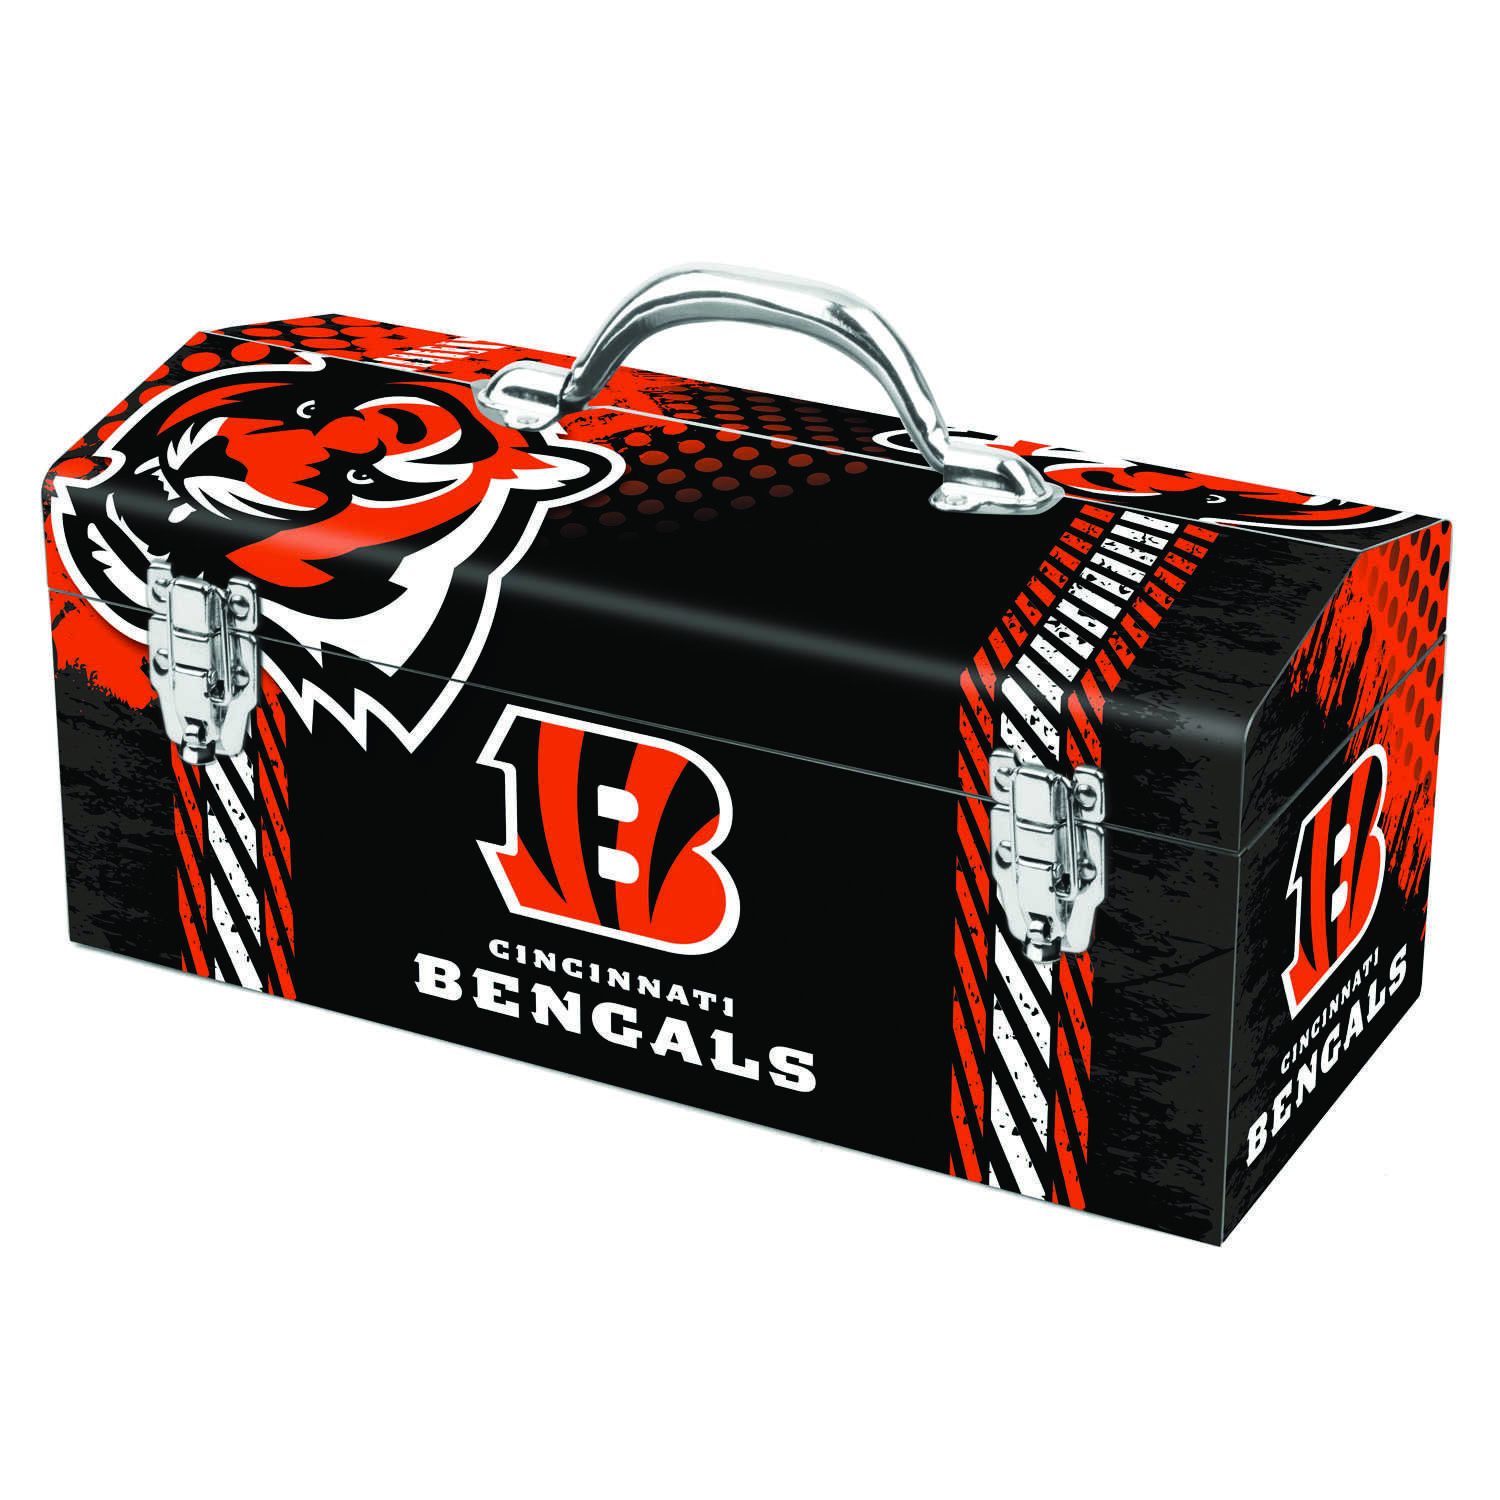 Sainty International  16.25 in. Steel  Cincinnati Bengals  Art Deco Tool Box  7.1 in. W x 7.75 in. H